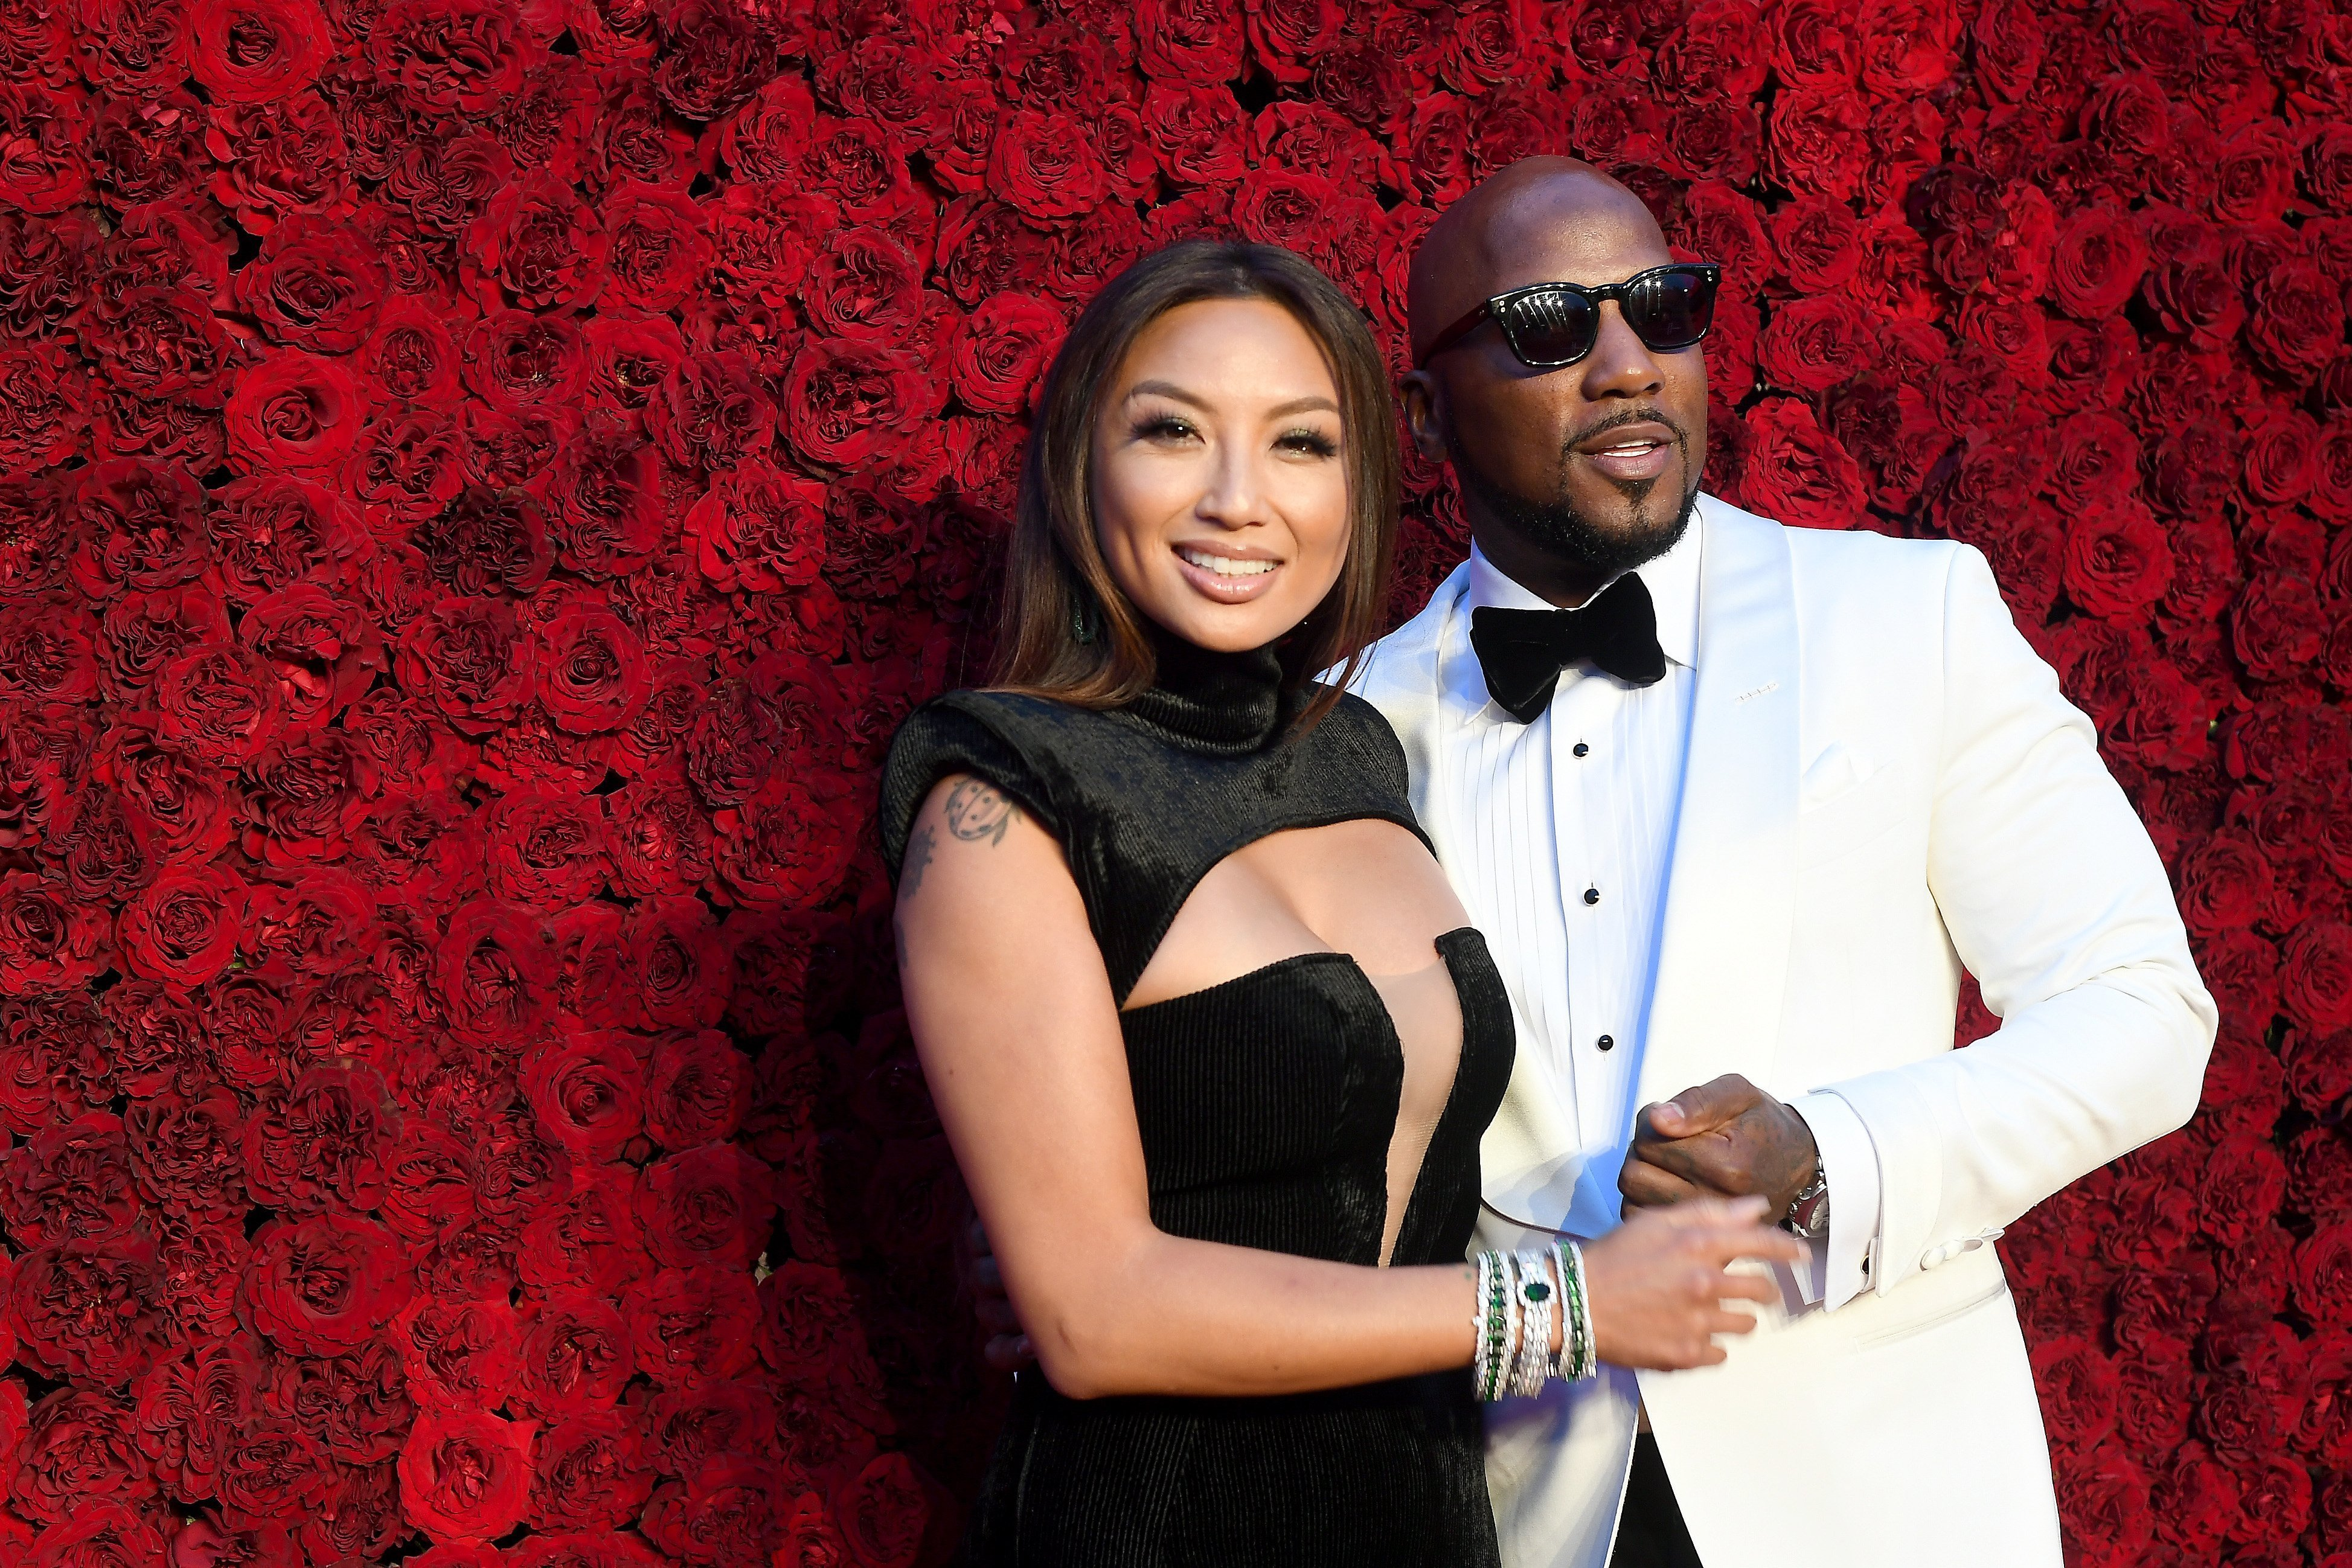 Jeannie Mai and Jeezy attend the Grand Opening Gala of Tyler Perry Studios in Georgia   Source: Getty Images/GlobalImagesUkraine